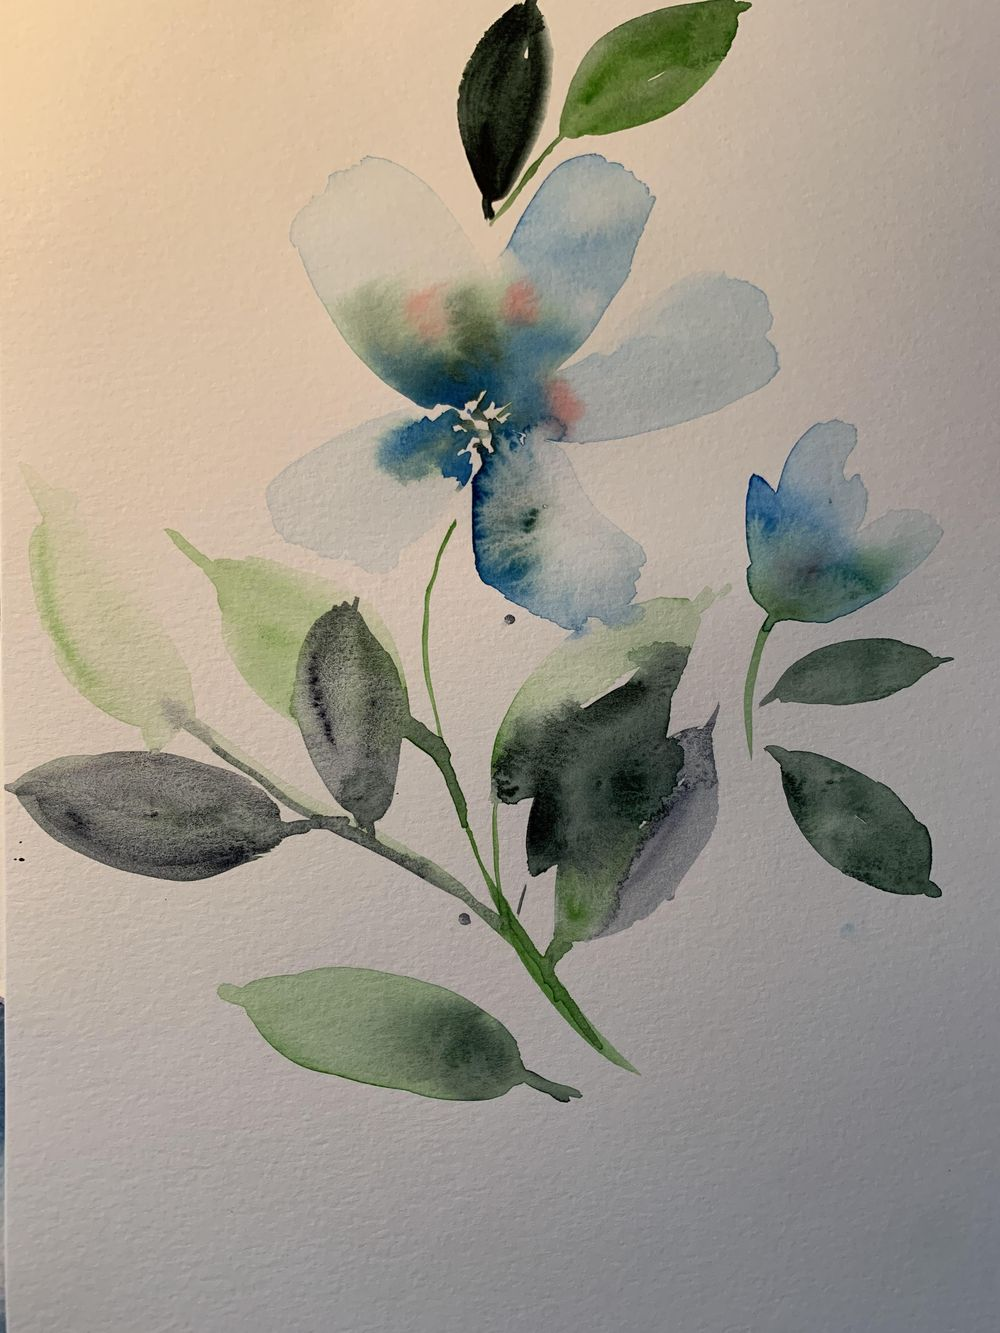 Tranquil flowers - image 1 - student project